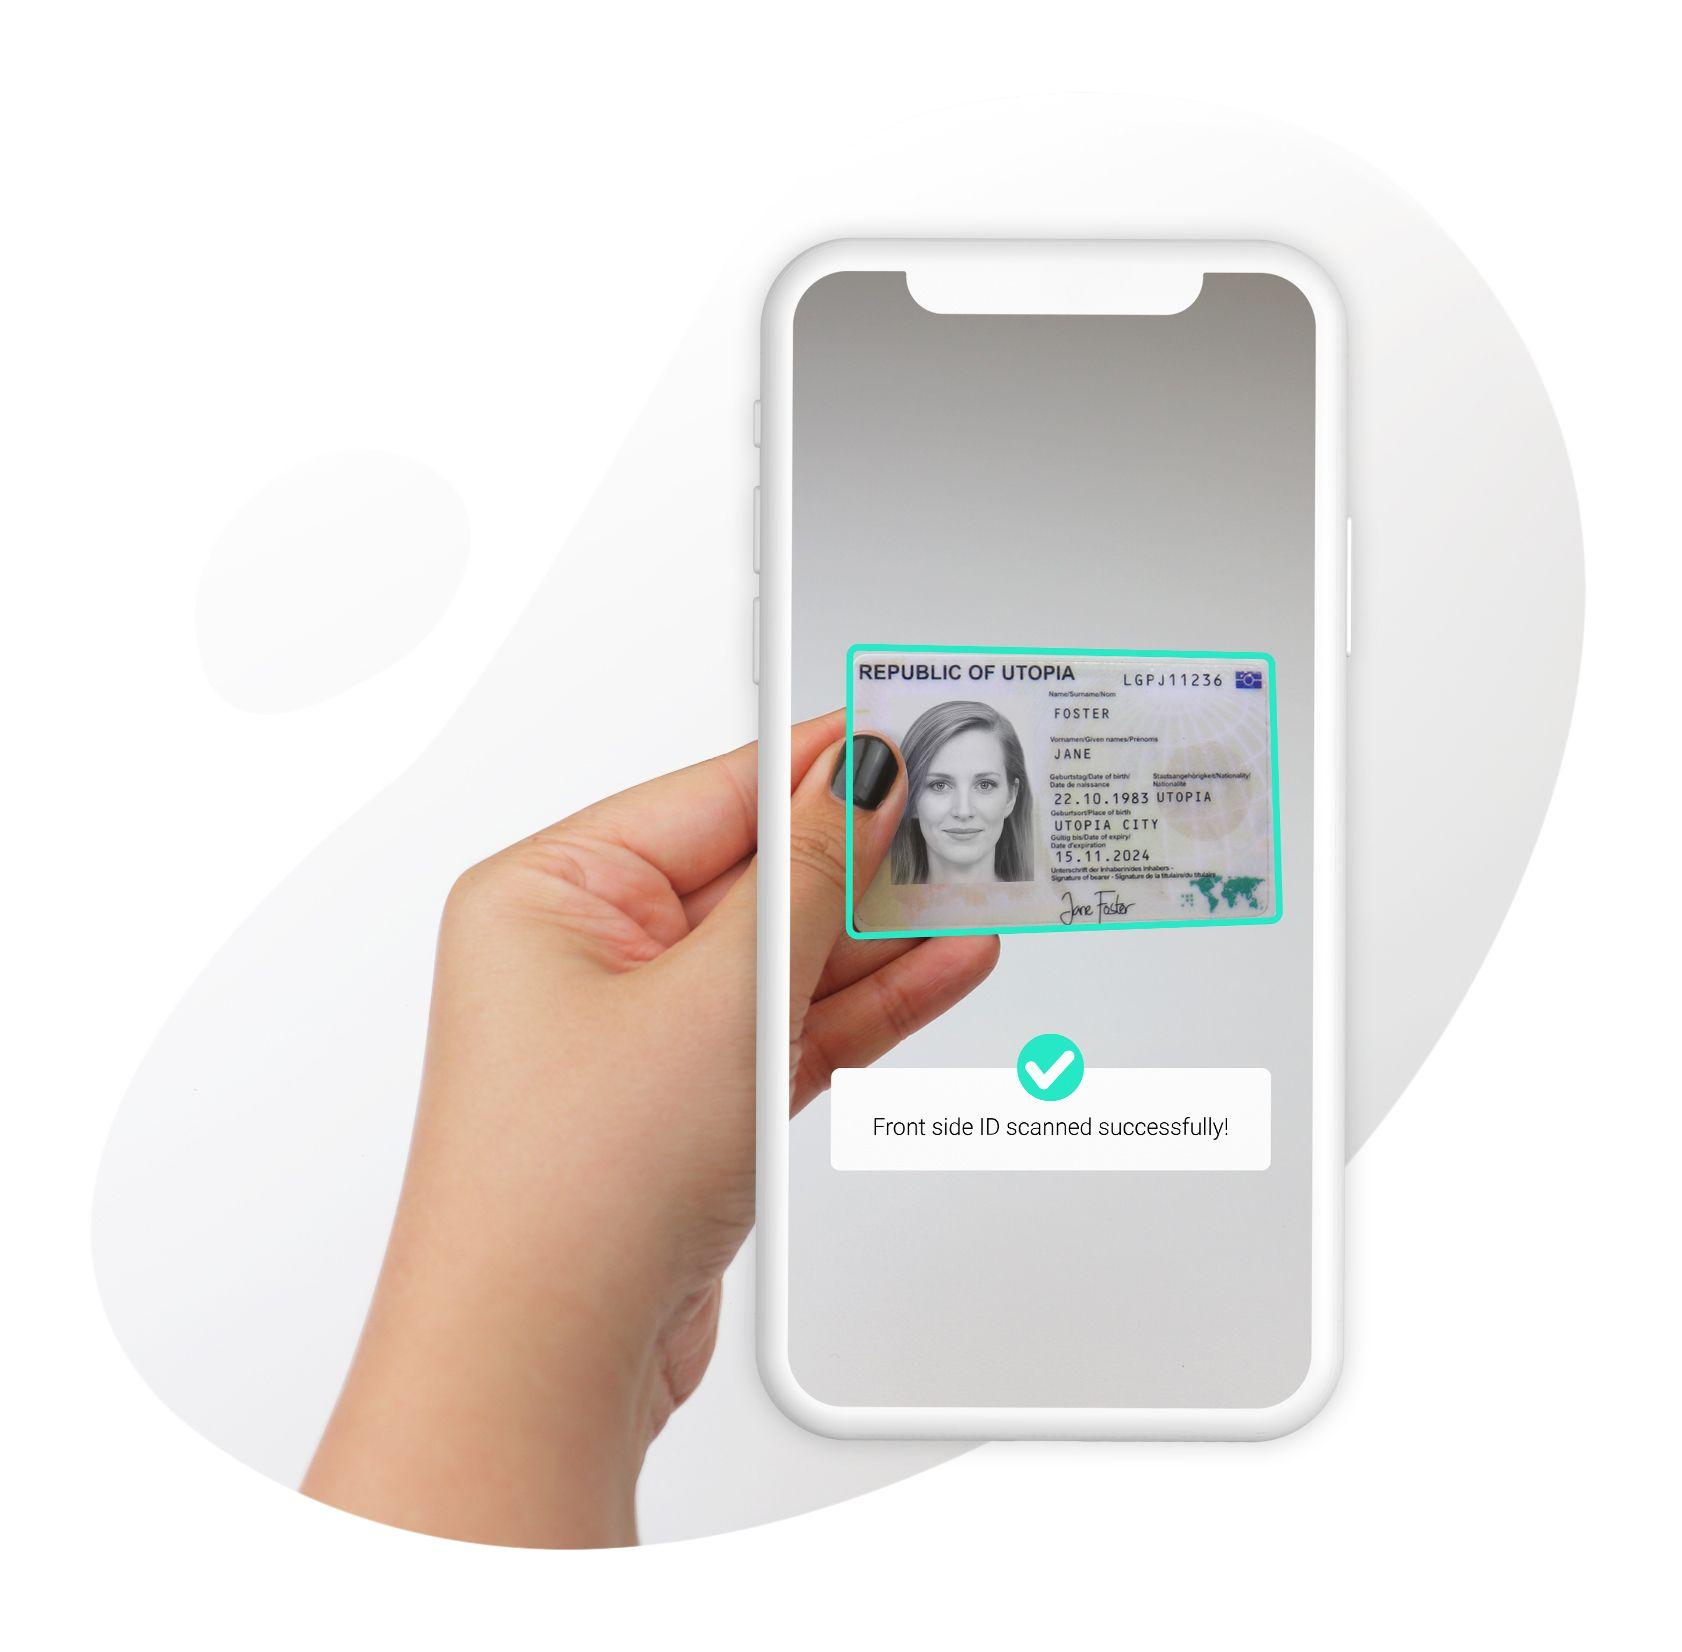 Scanning ID card using mobile phone